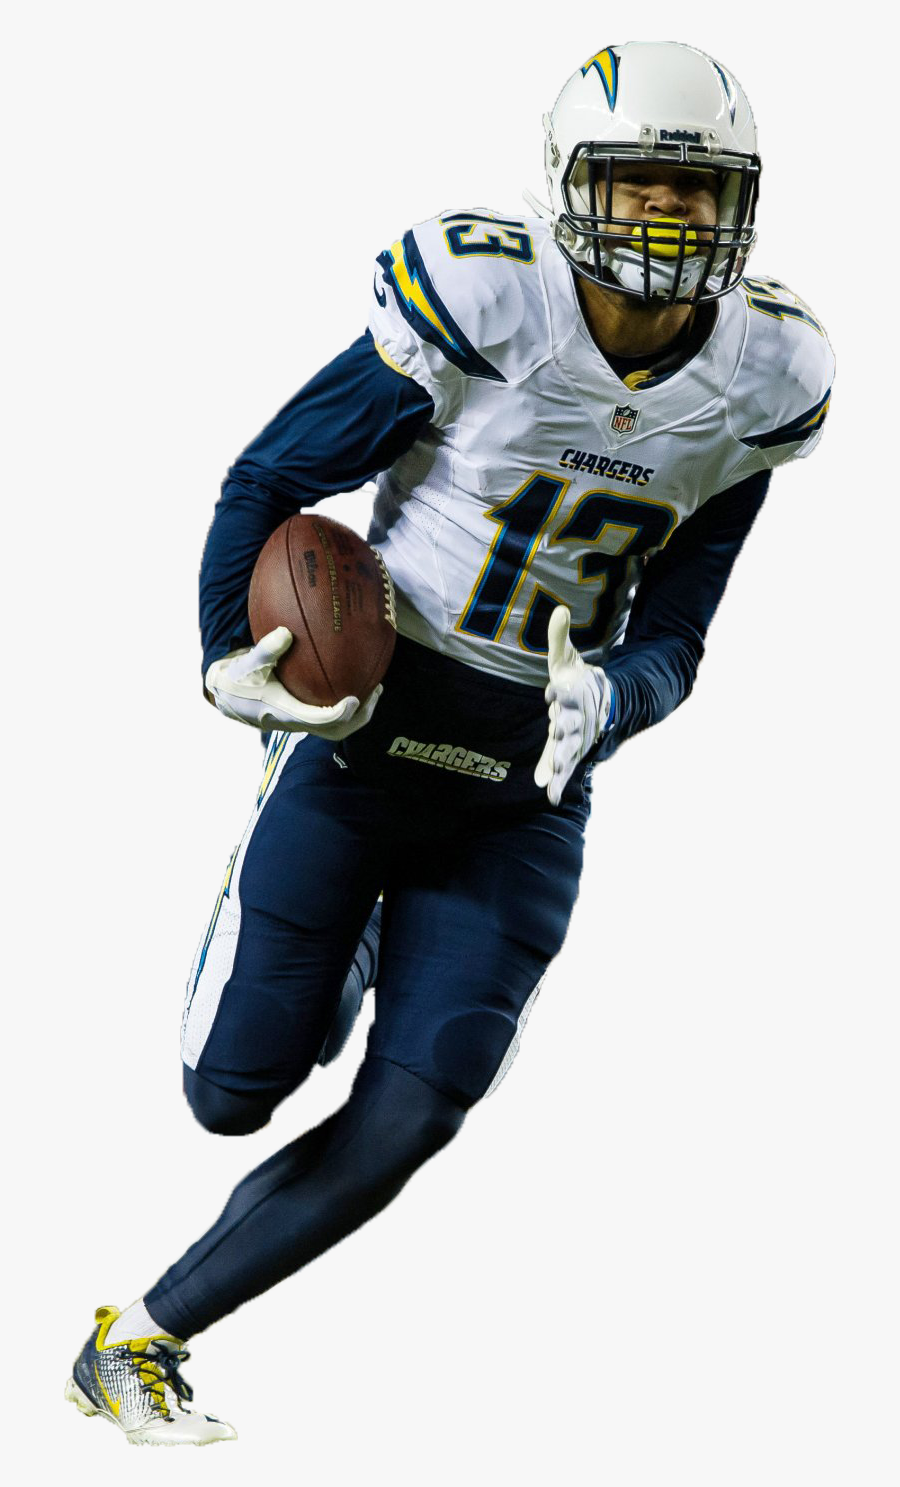 American Football Png - American Football Player Png, Transparent Clipart